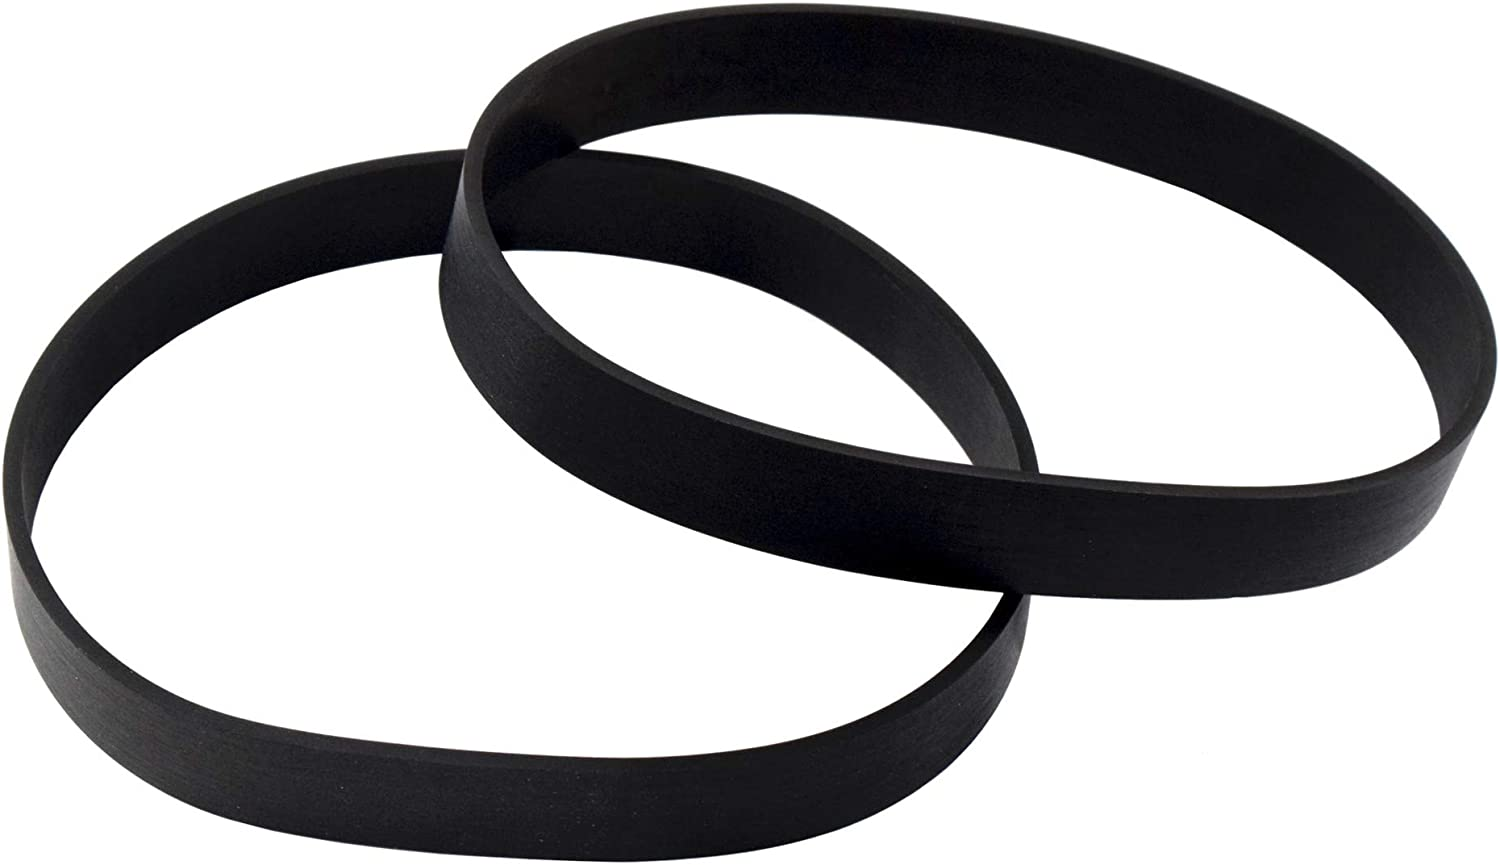 HQRP 2-Pack Vacuum Belt Replacement Works with Eureka Style U Belt Parts 61120 61120A 61120B 61120C 61120D 61120F 61120G 2900 4100-4700 5180 5800 7600 8800 9000 AS1000 Series Upright Vacuums